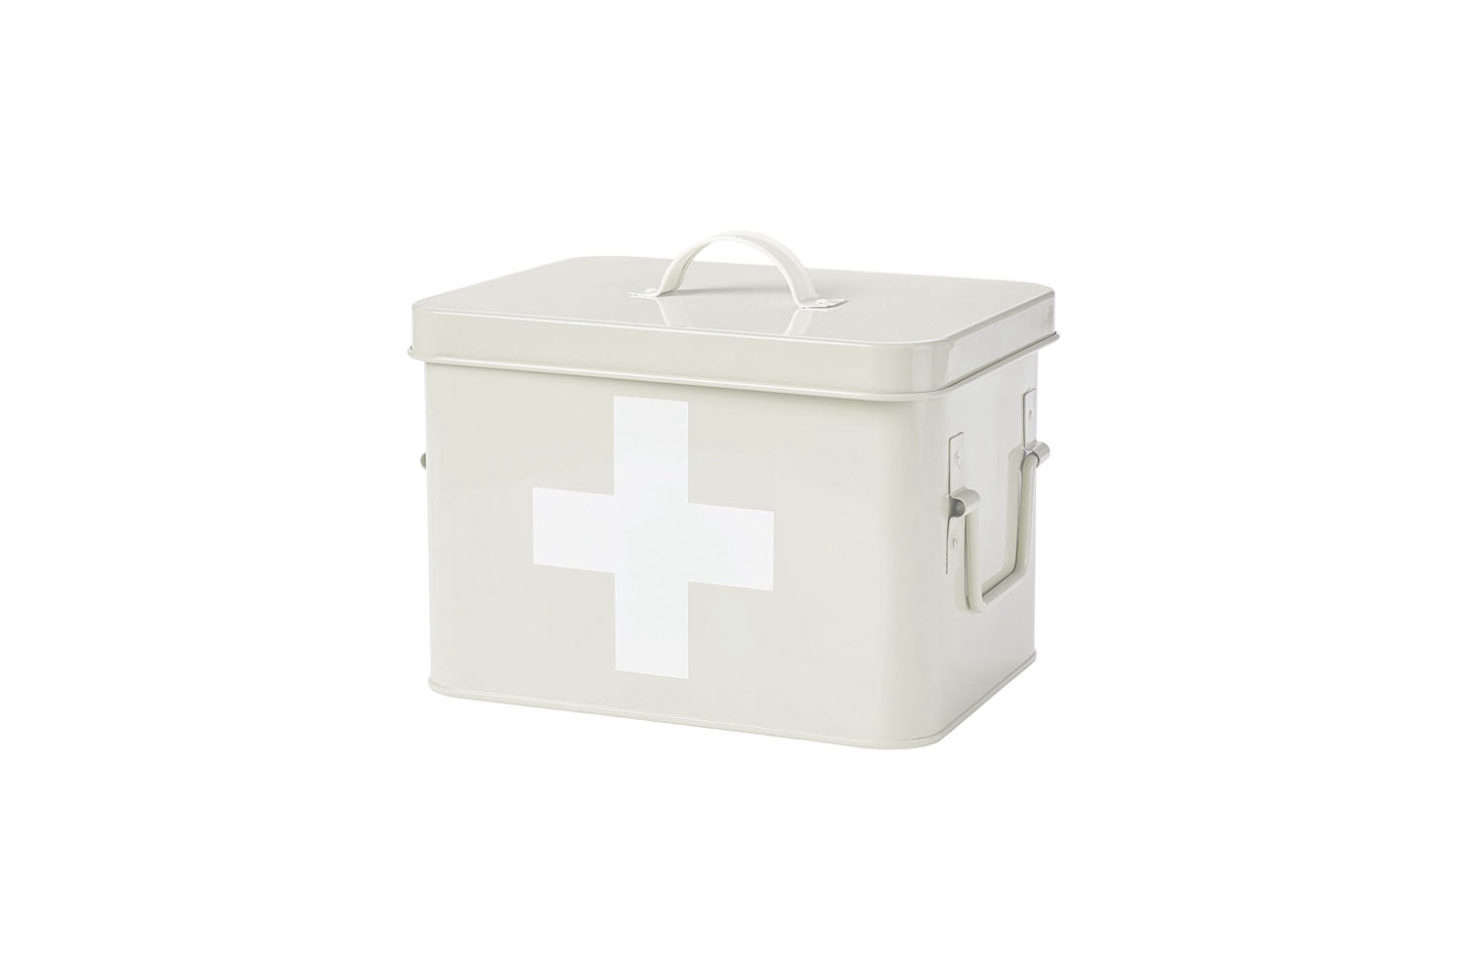 The Andrew James First Aid Box(£12.00), In A Vintage Cream Color